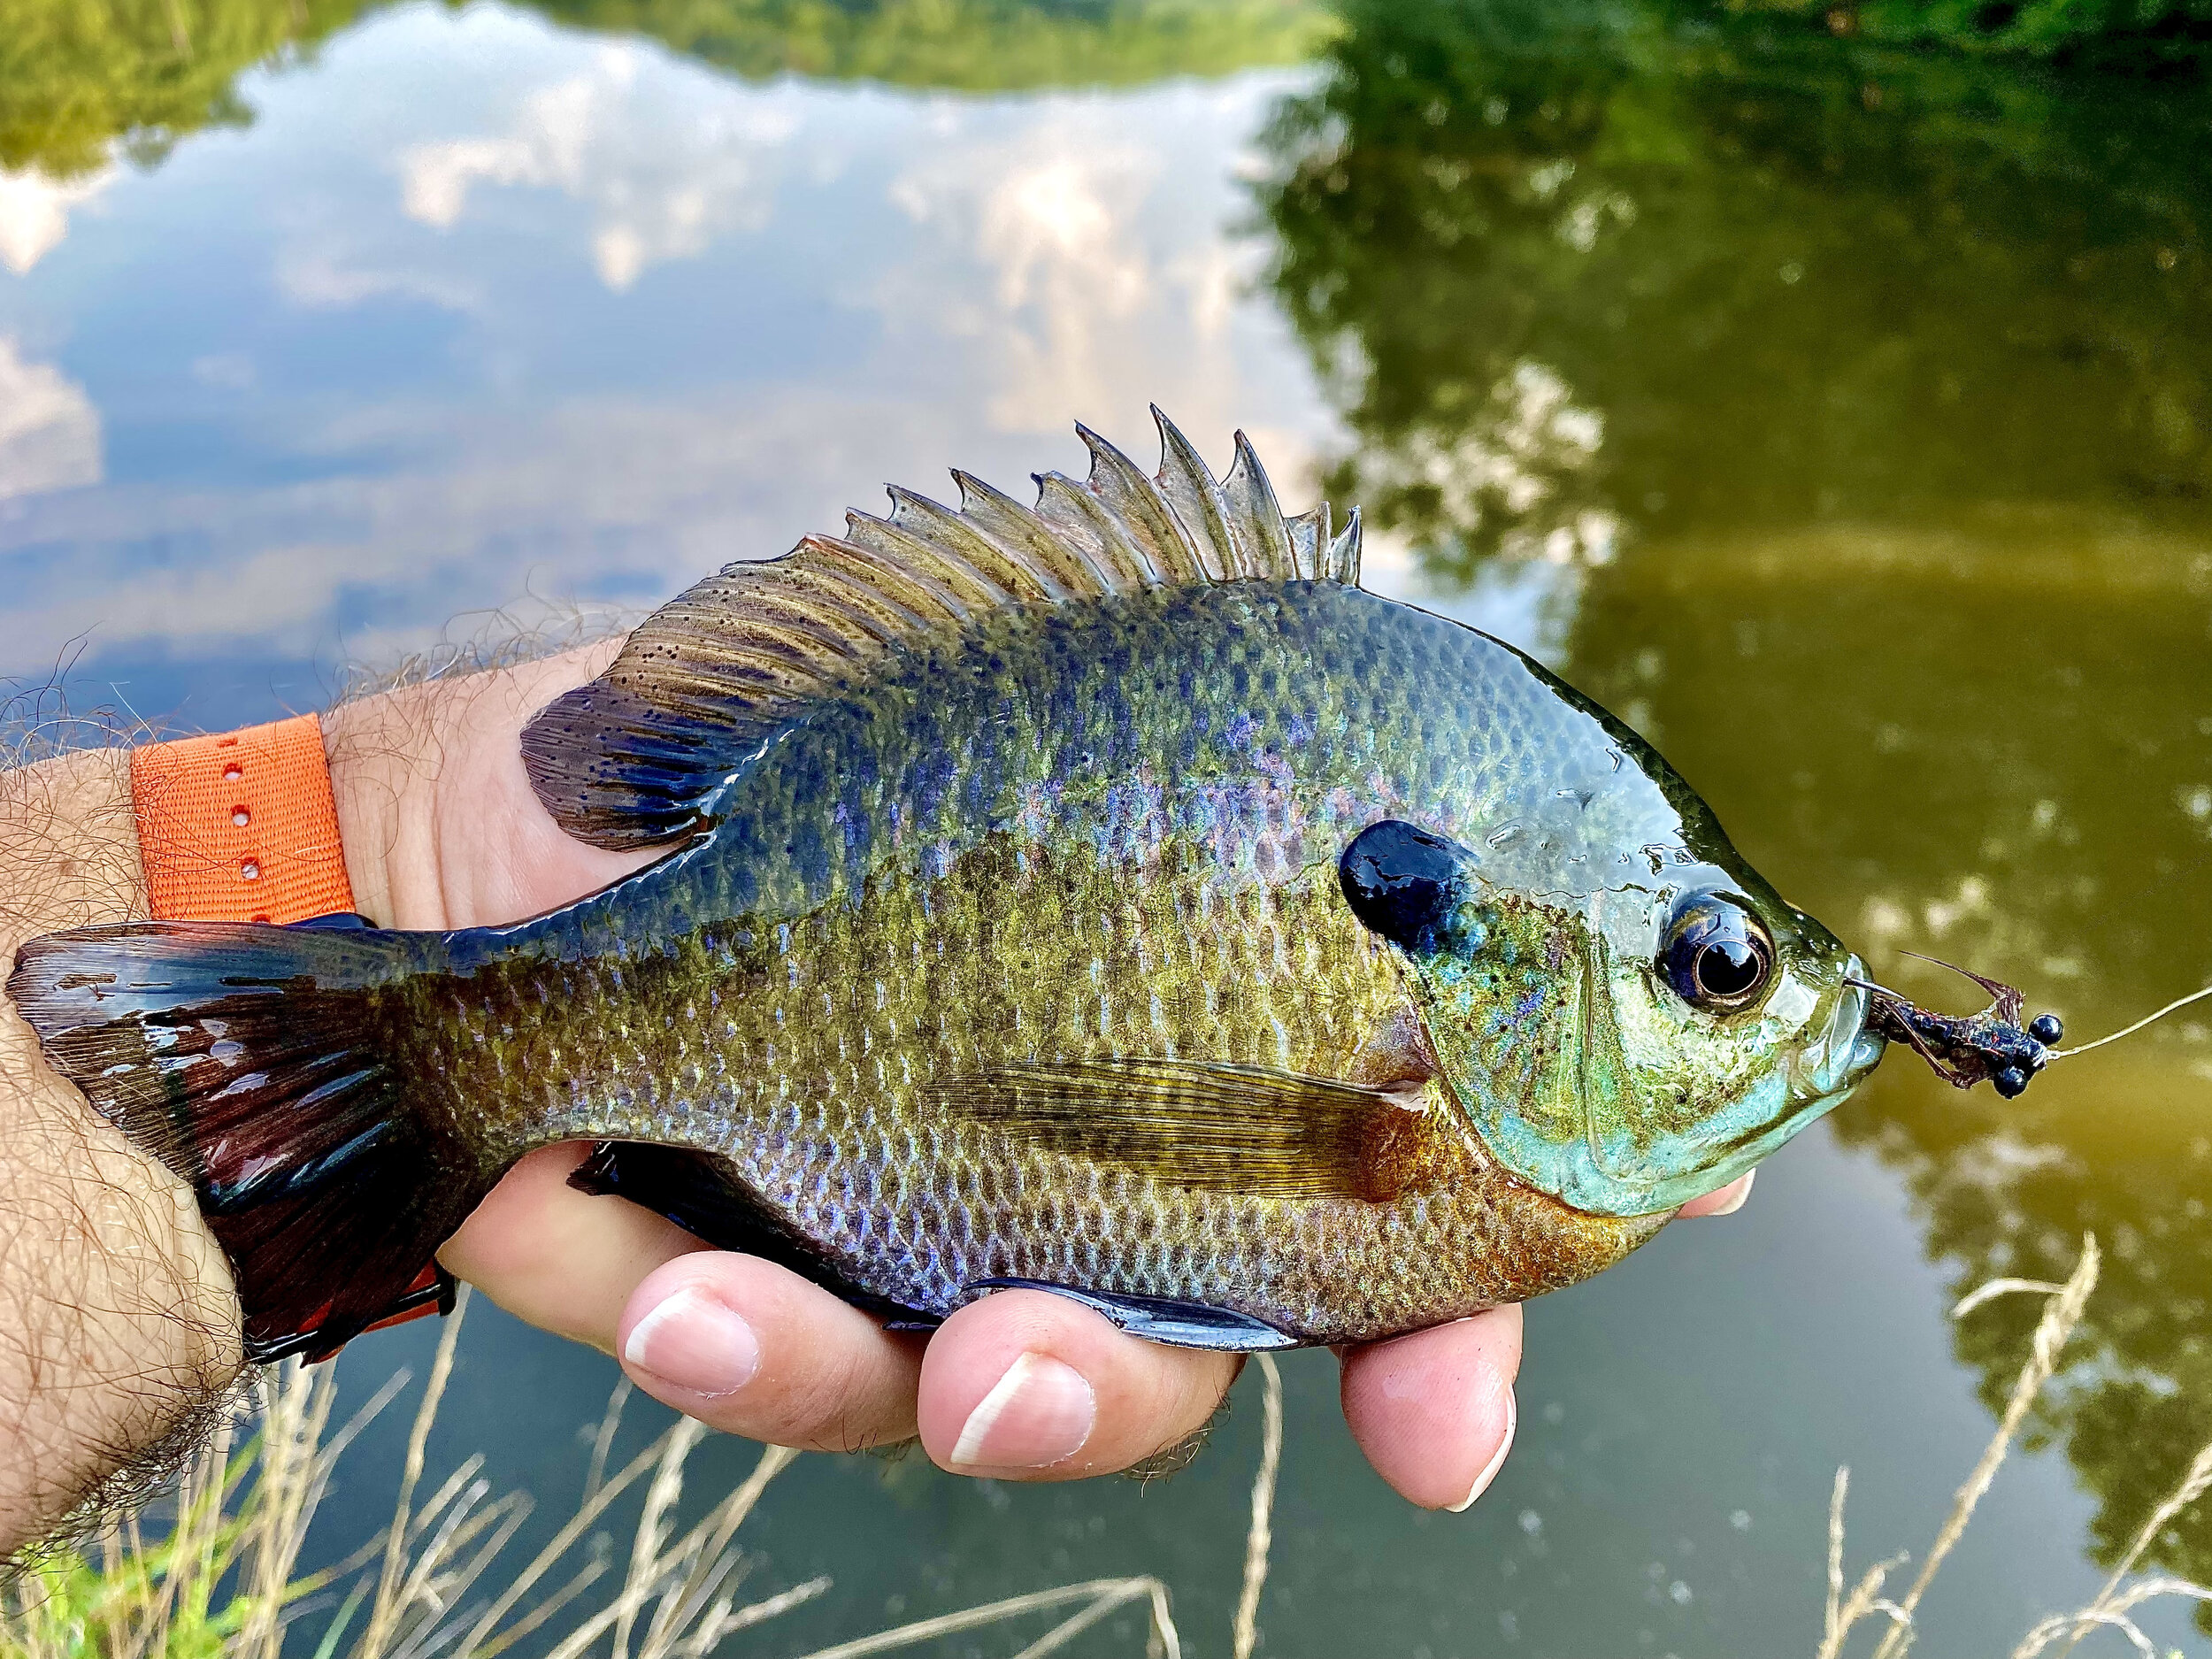 Fished above sunken weed beds, or along side one as the case here, a deeply fished floating nymph pattern can produce great mid-day fishing during the height of summer.